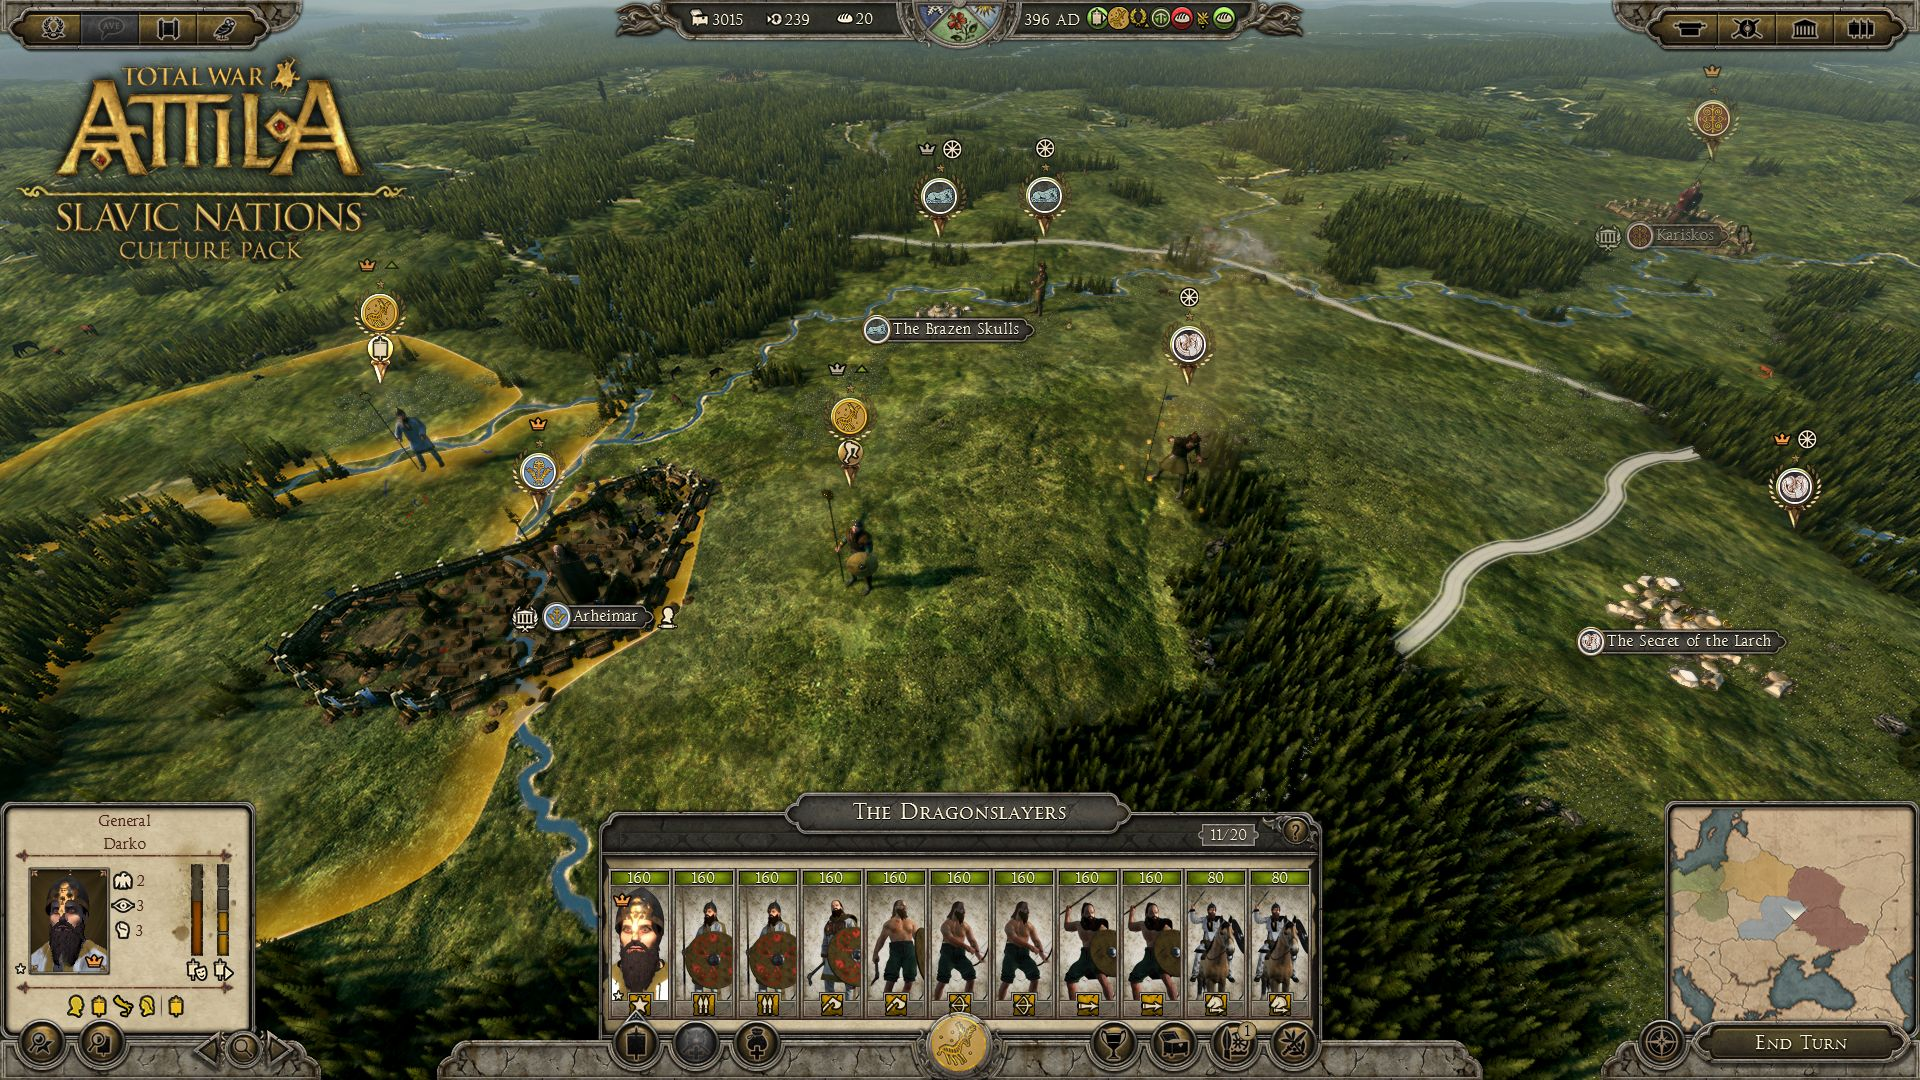 Total War: Attila Offers Free Garamantian Faction, Extensive Patch